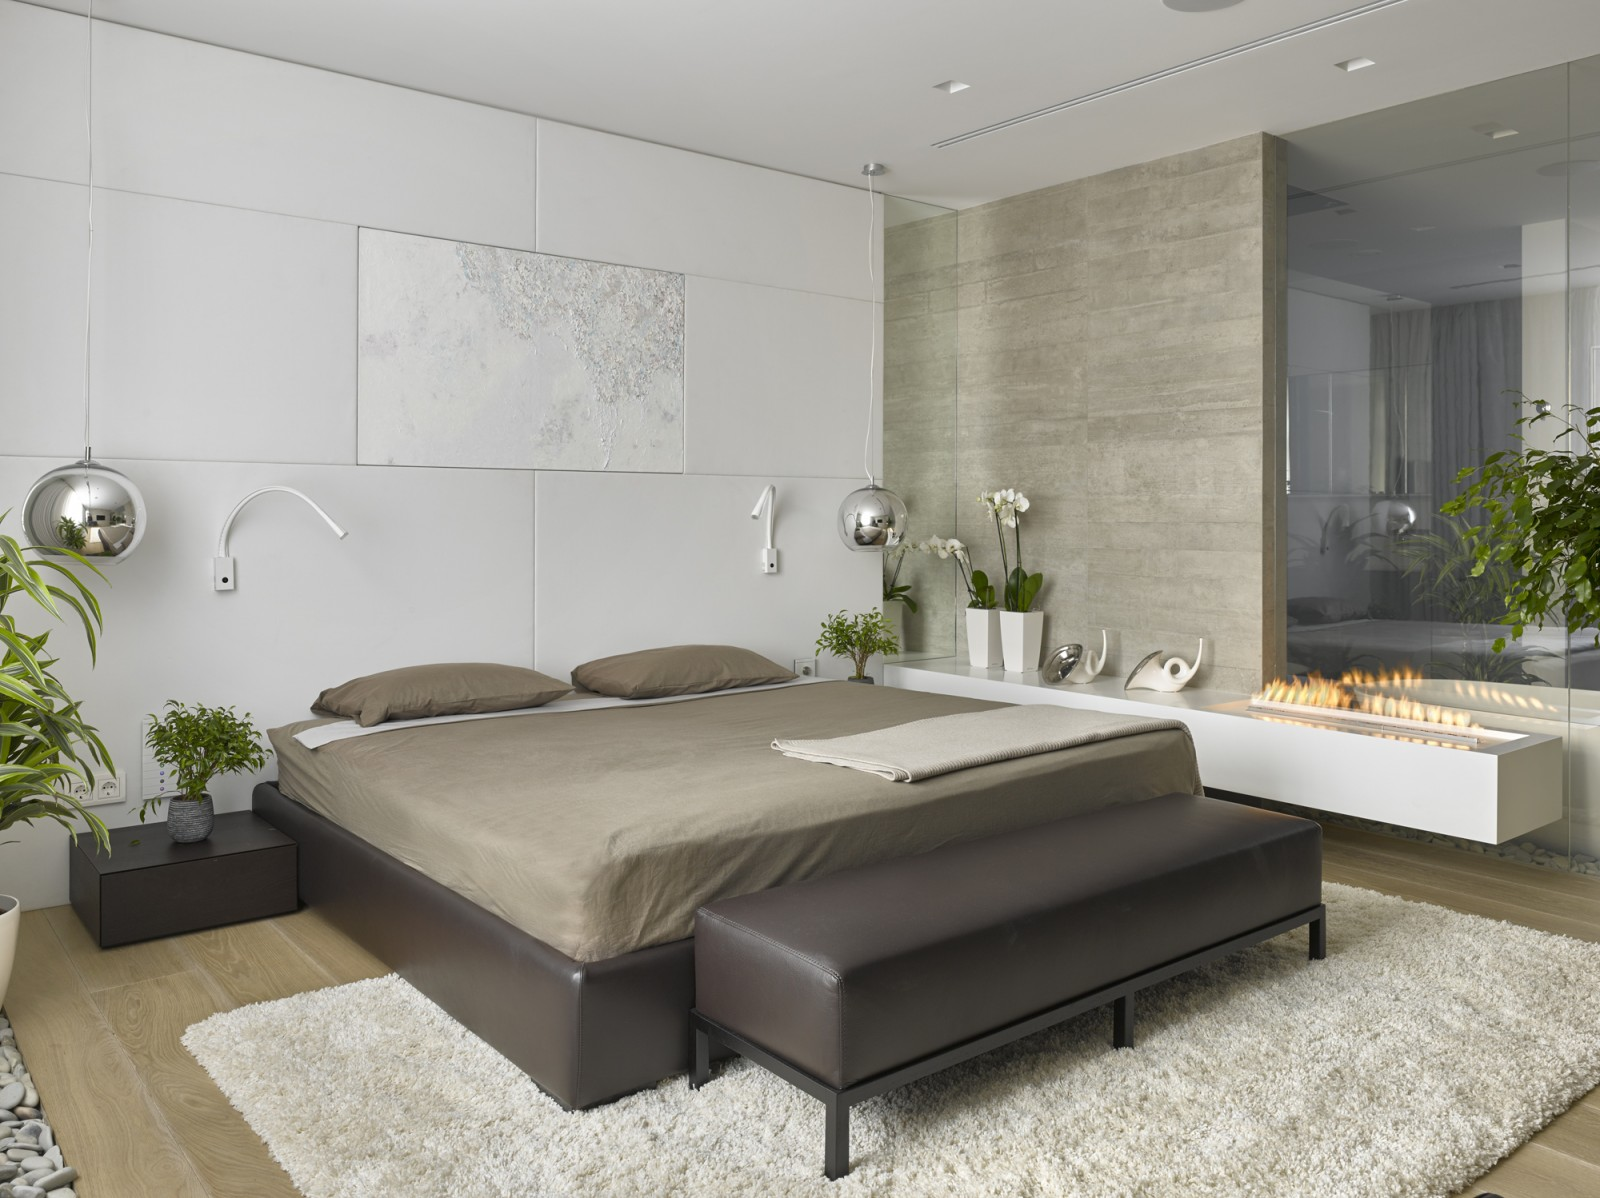 20 Small Bedroom Ideas That Will Leave You Speechless ... on Small Bedroom Ideas  id=59036